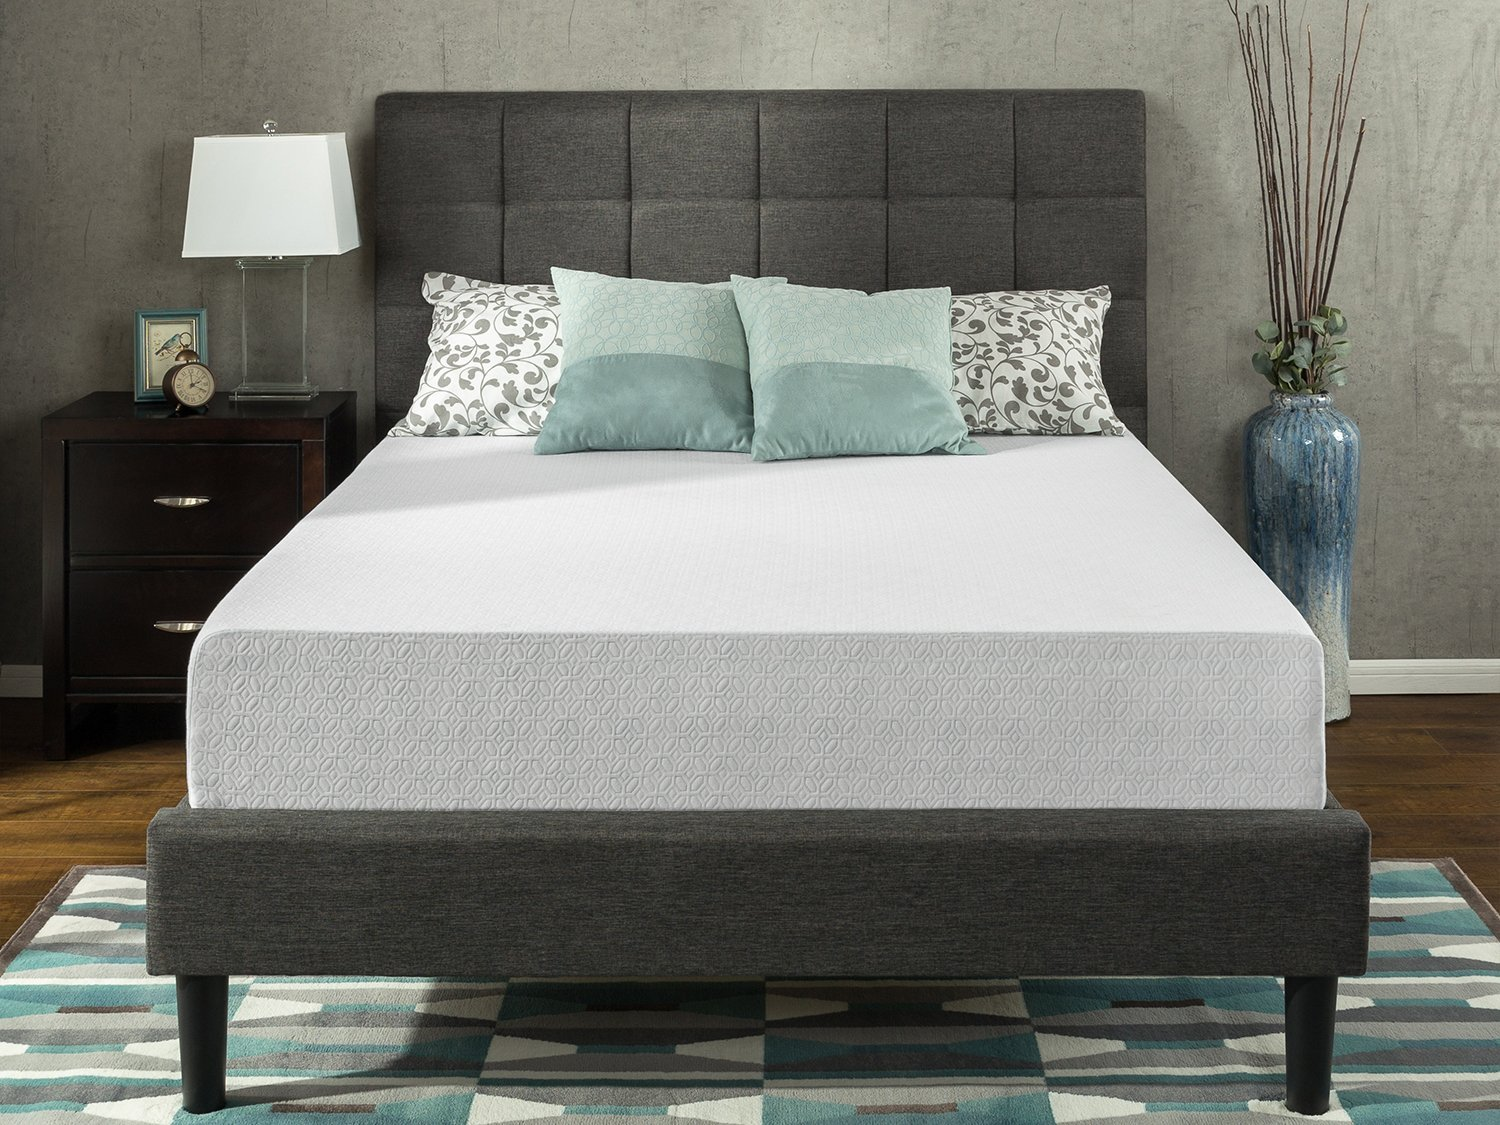 Savvy Spending Amazon Prime Members Get Exclusive Discount On Highly Rated Zinus Mattresses